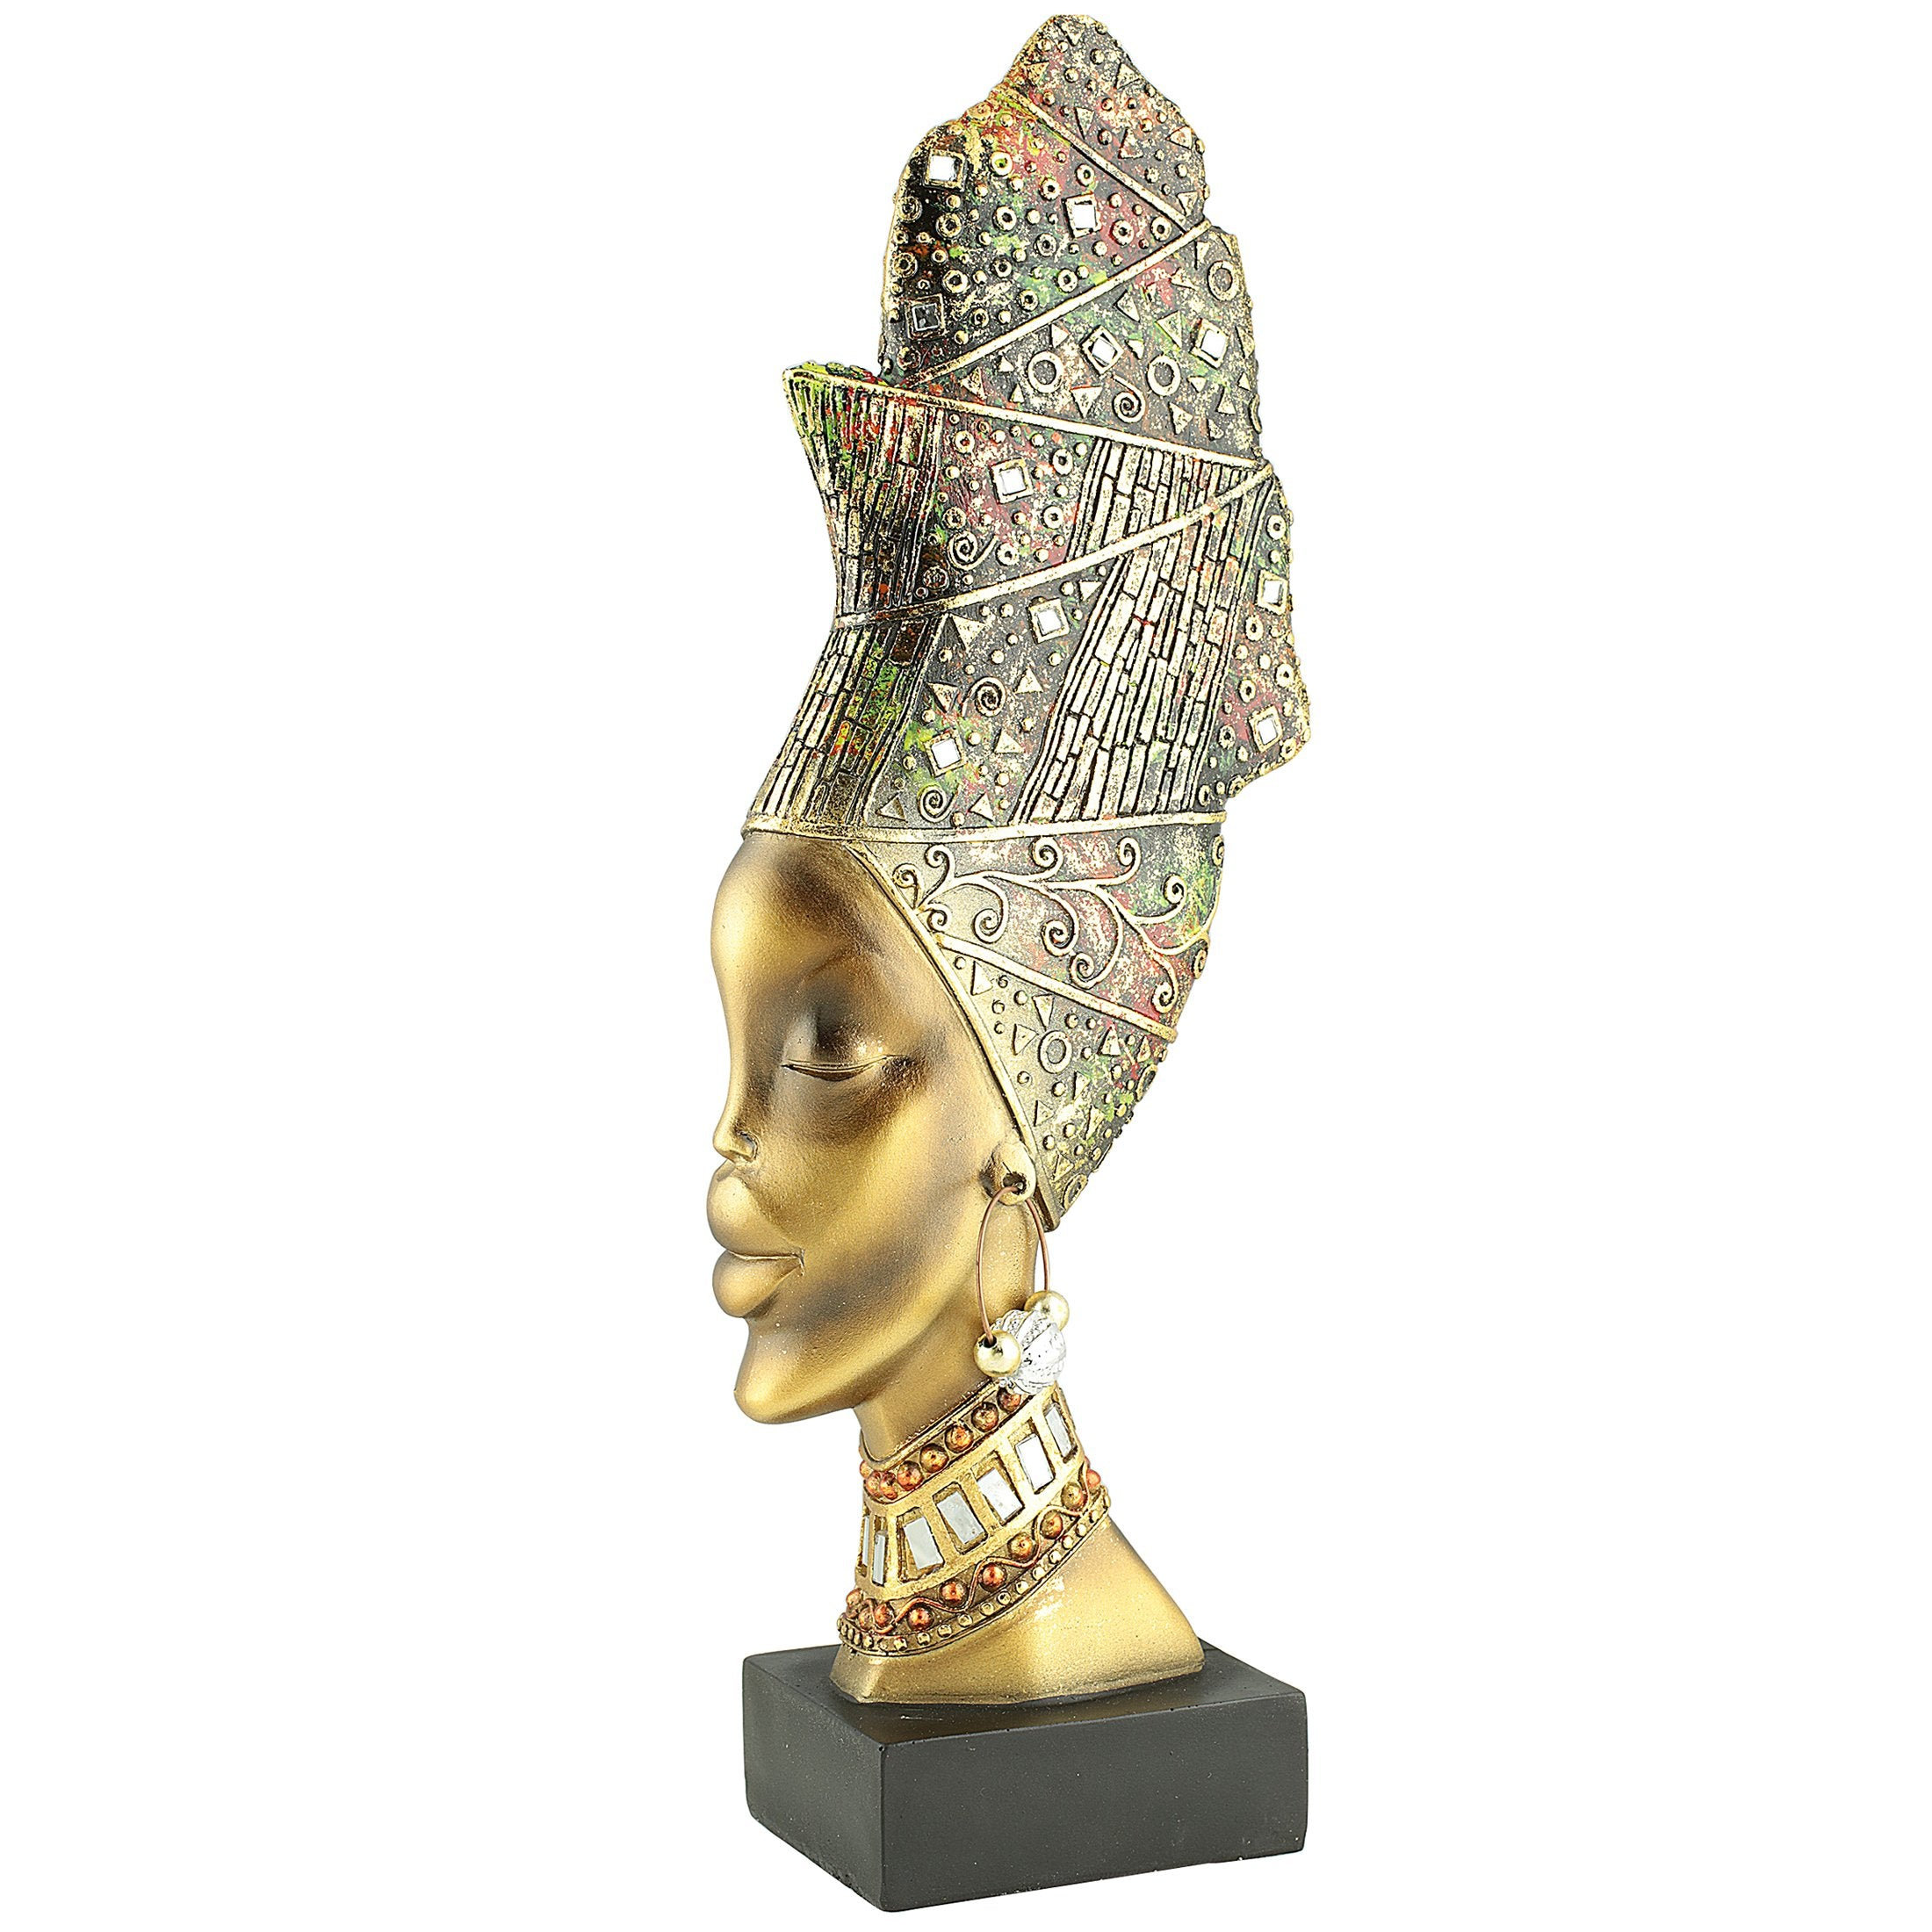 Nubian Queen: Afrocentric Table Top Sculpture by Unison Gifts